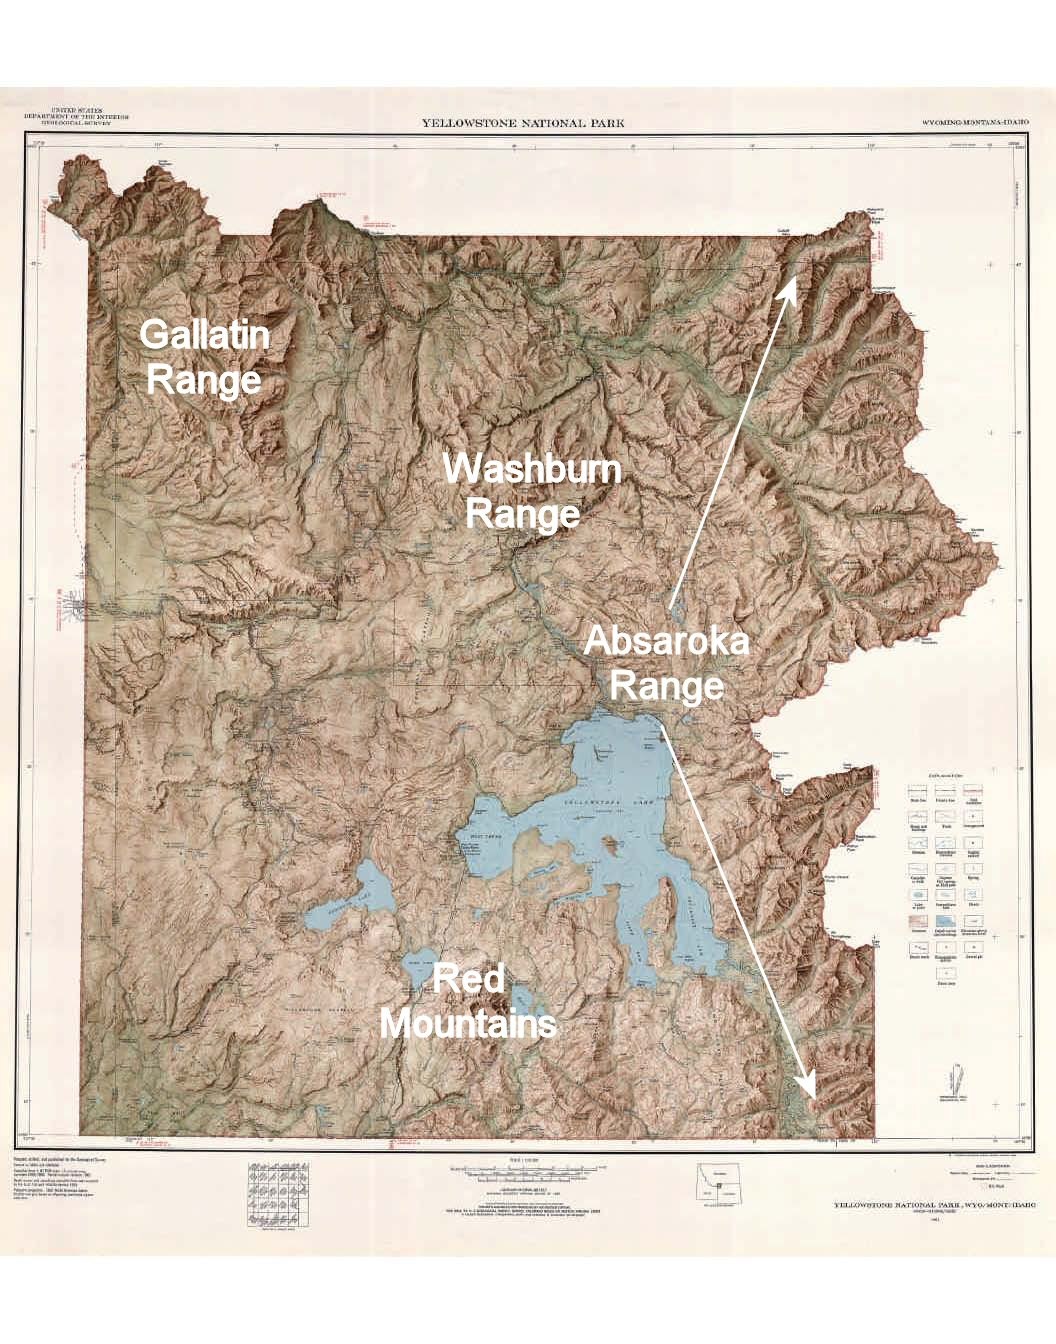 List Of Mountains And Mountain Ranges Of Yellowstone